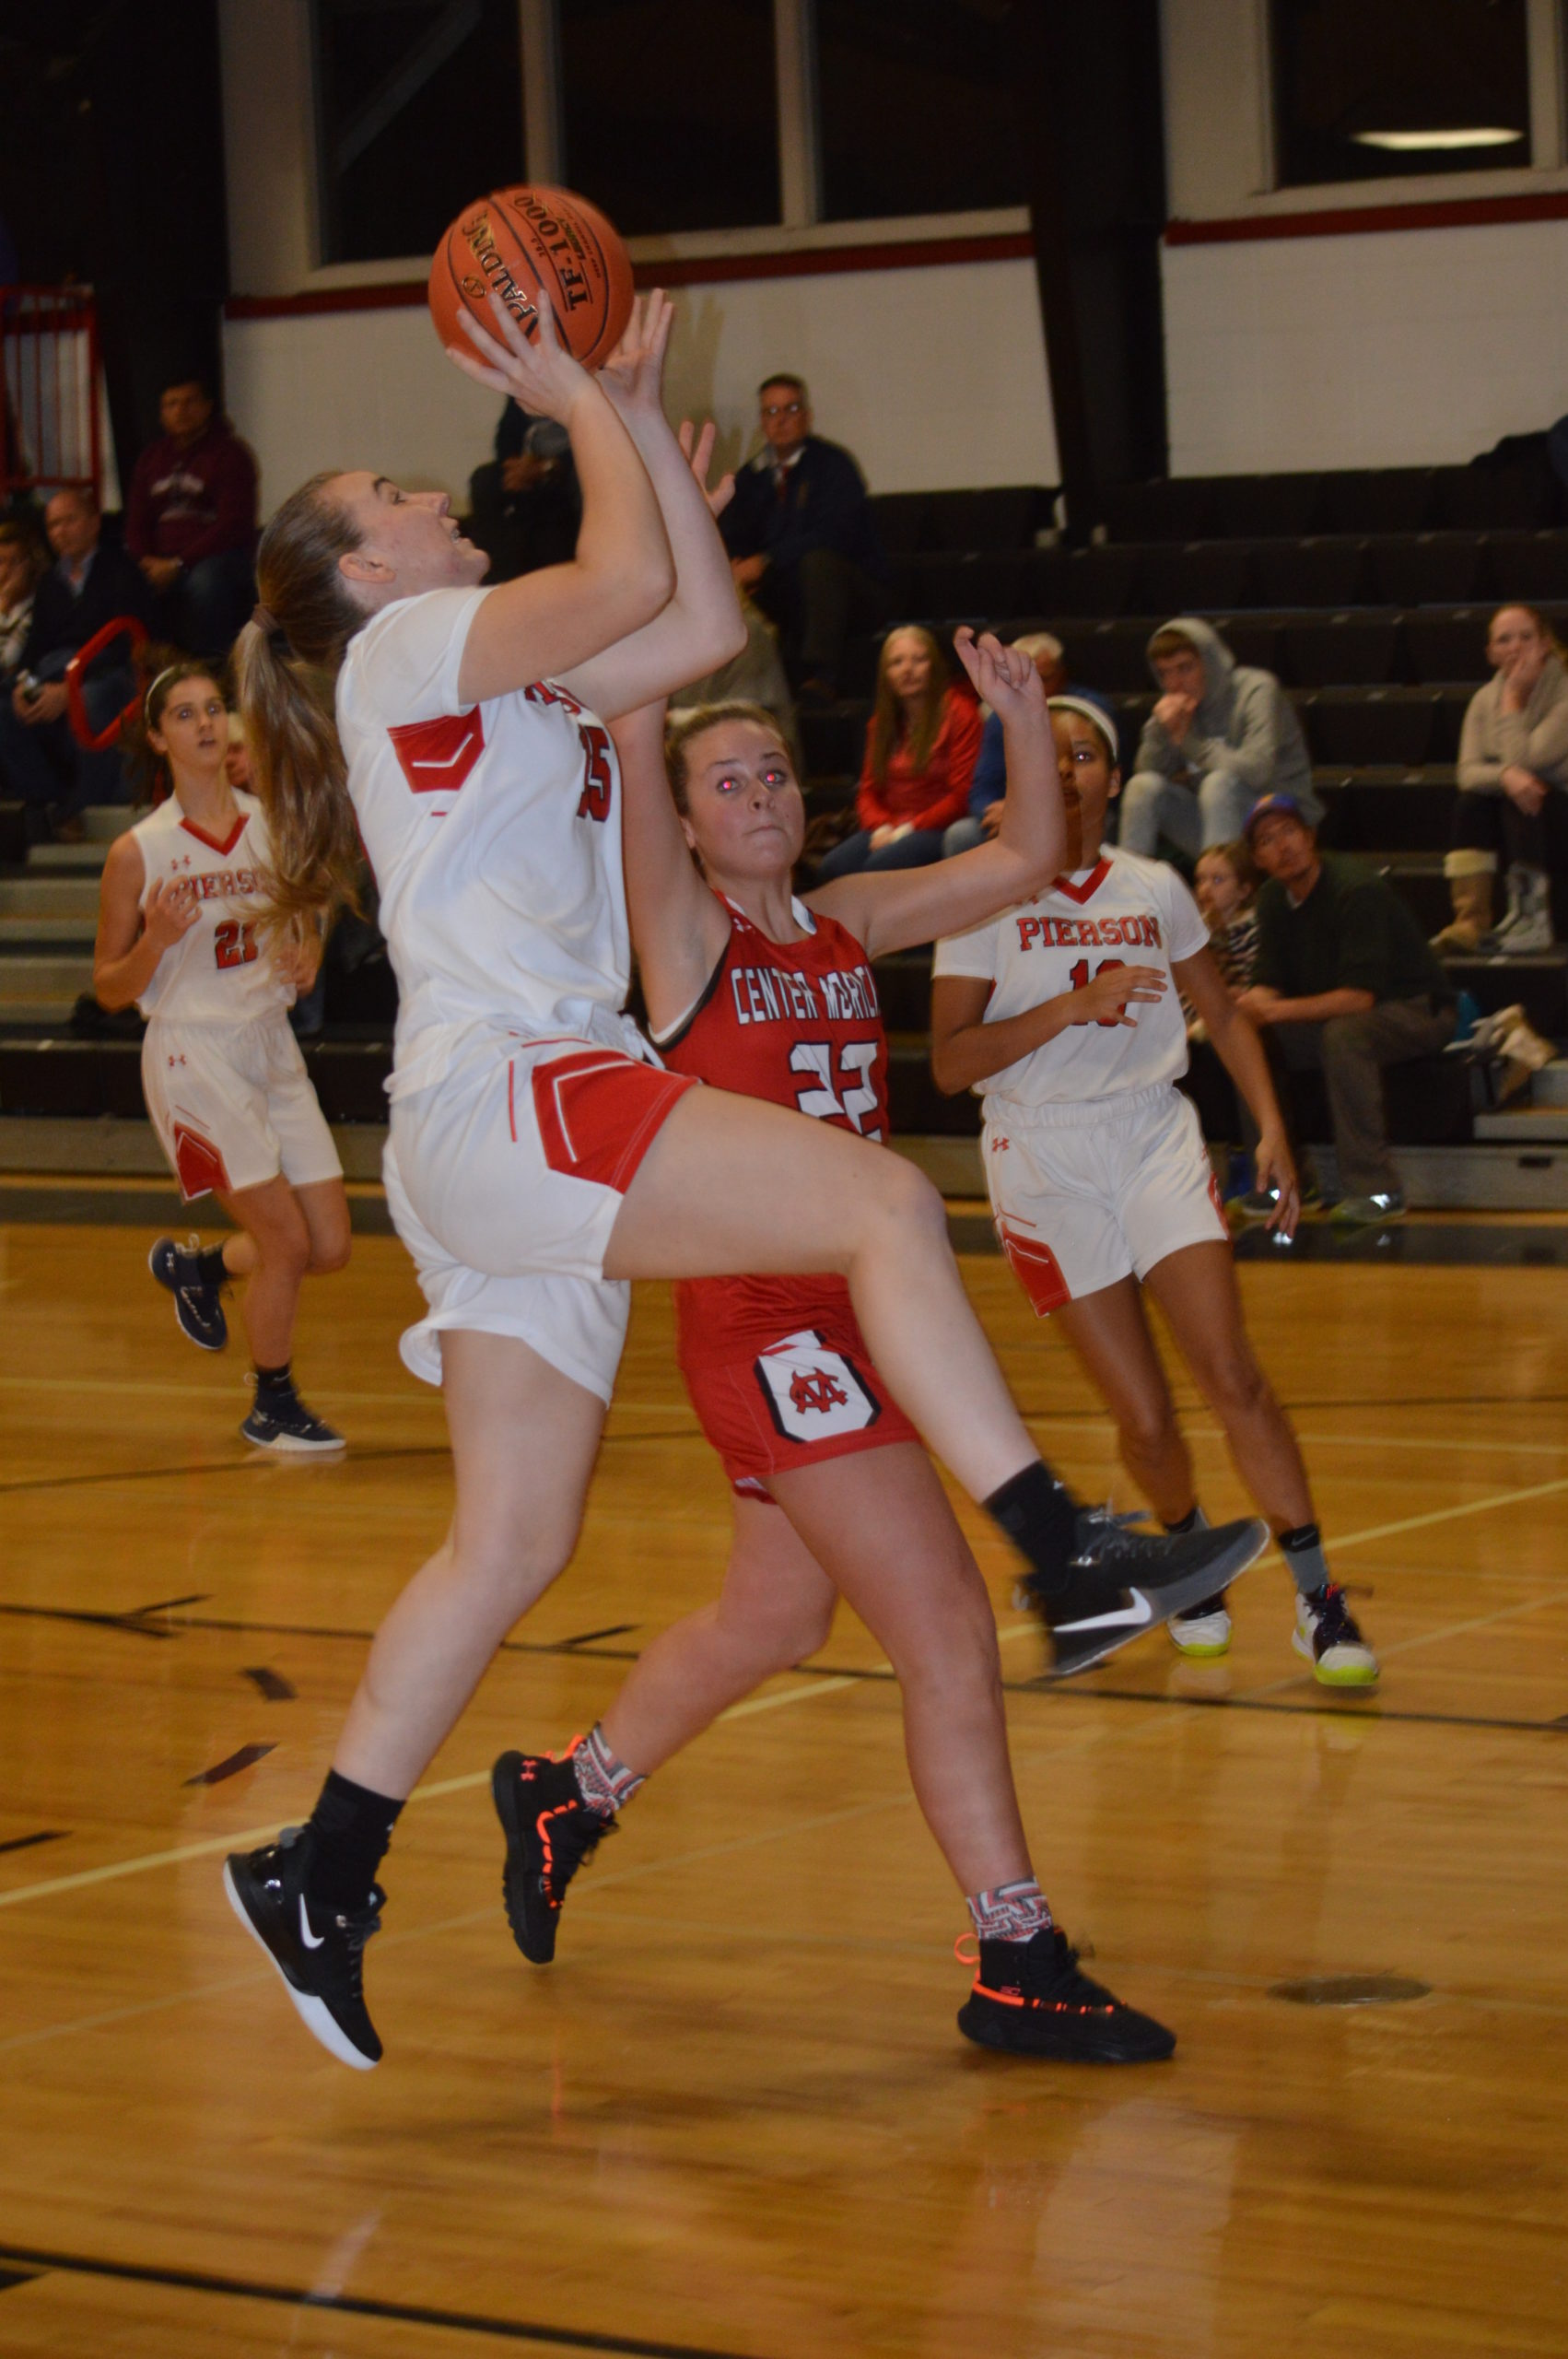 Kathryn Powell shooting against Center Moriches.